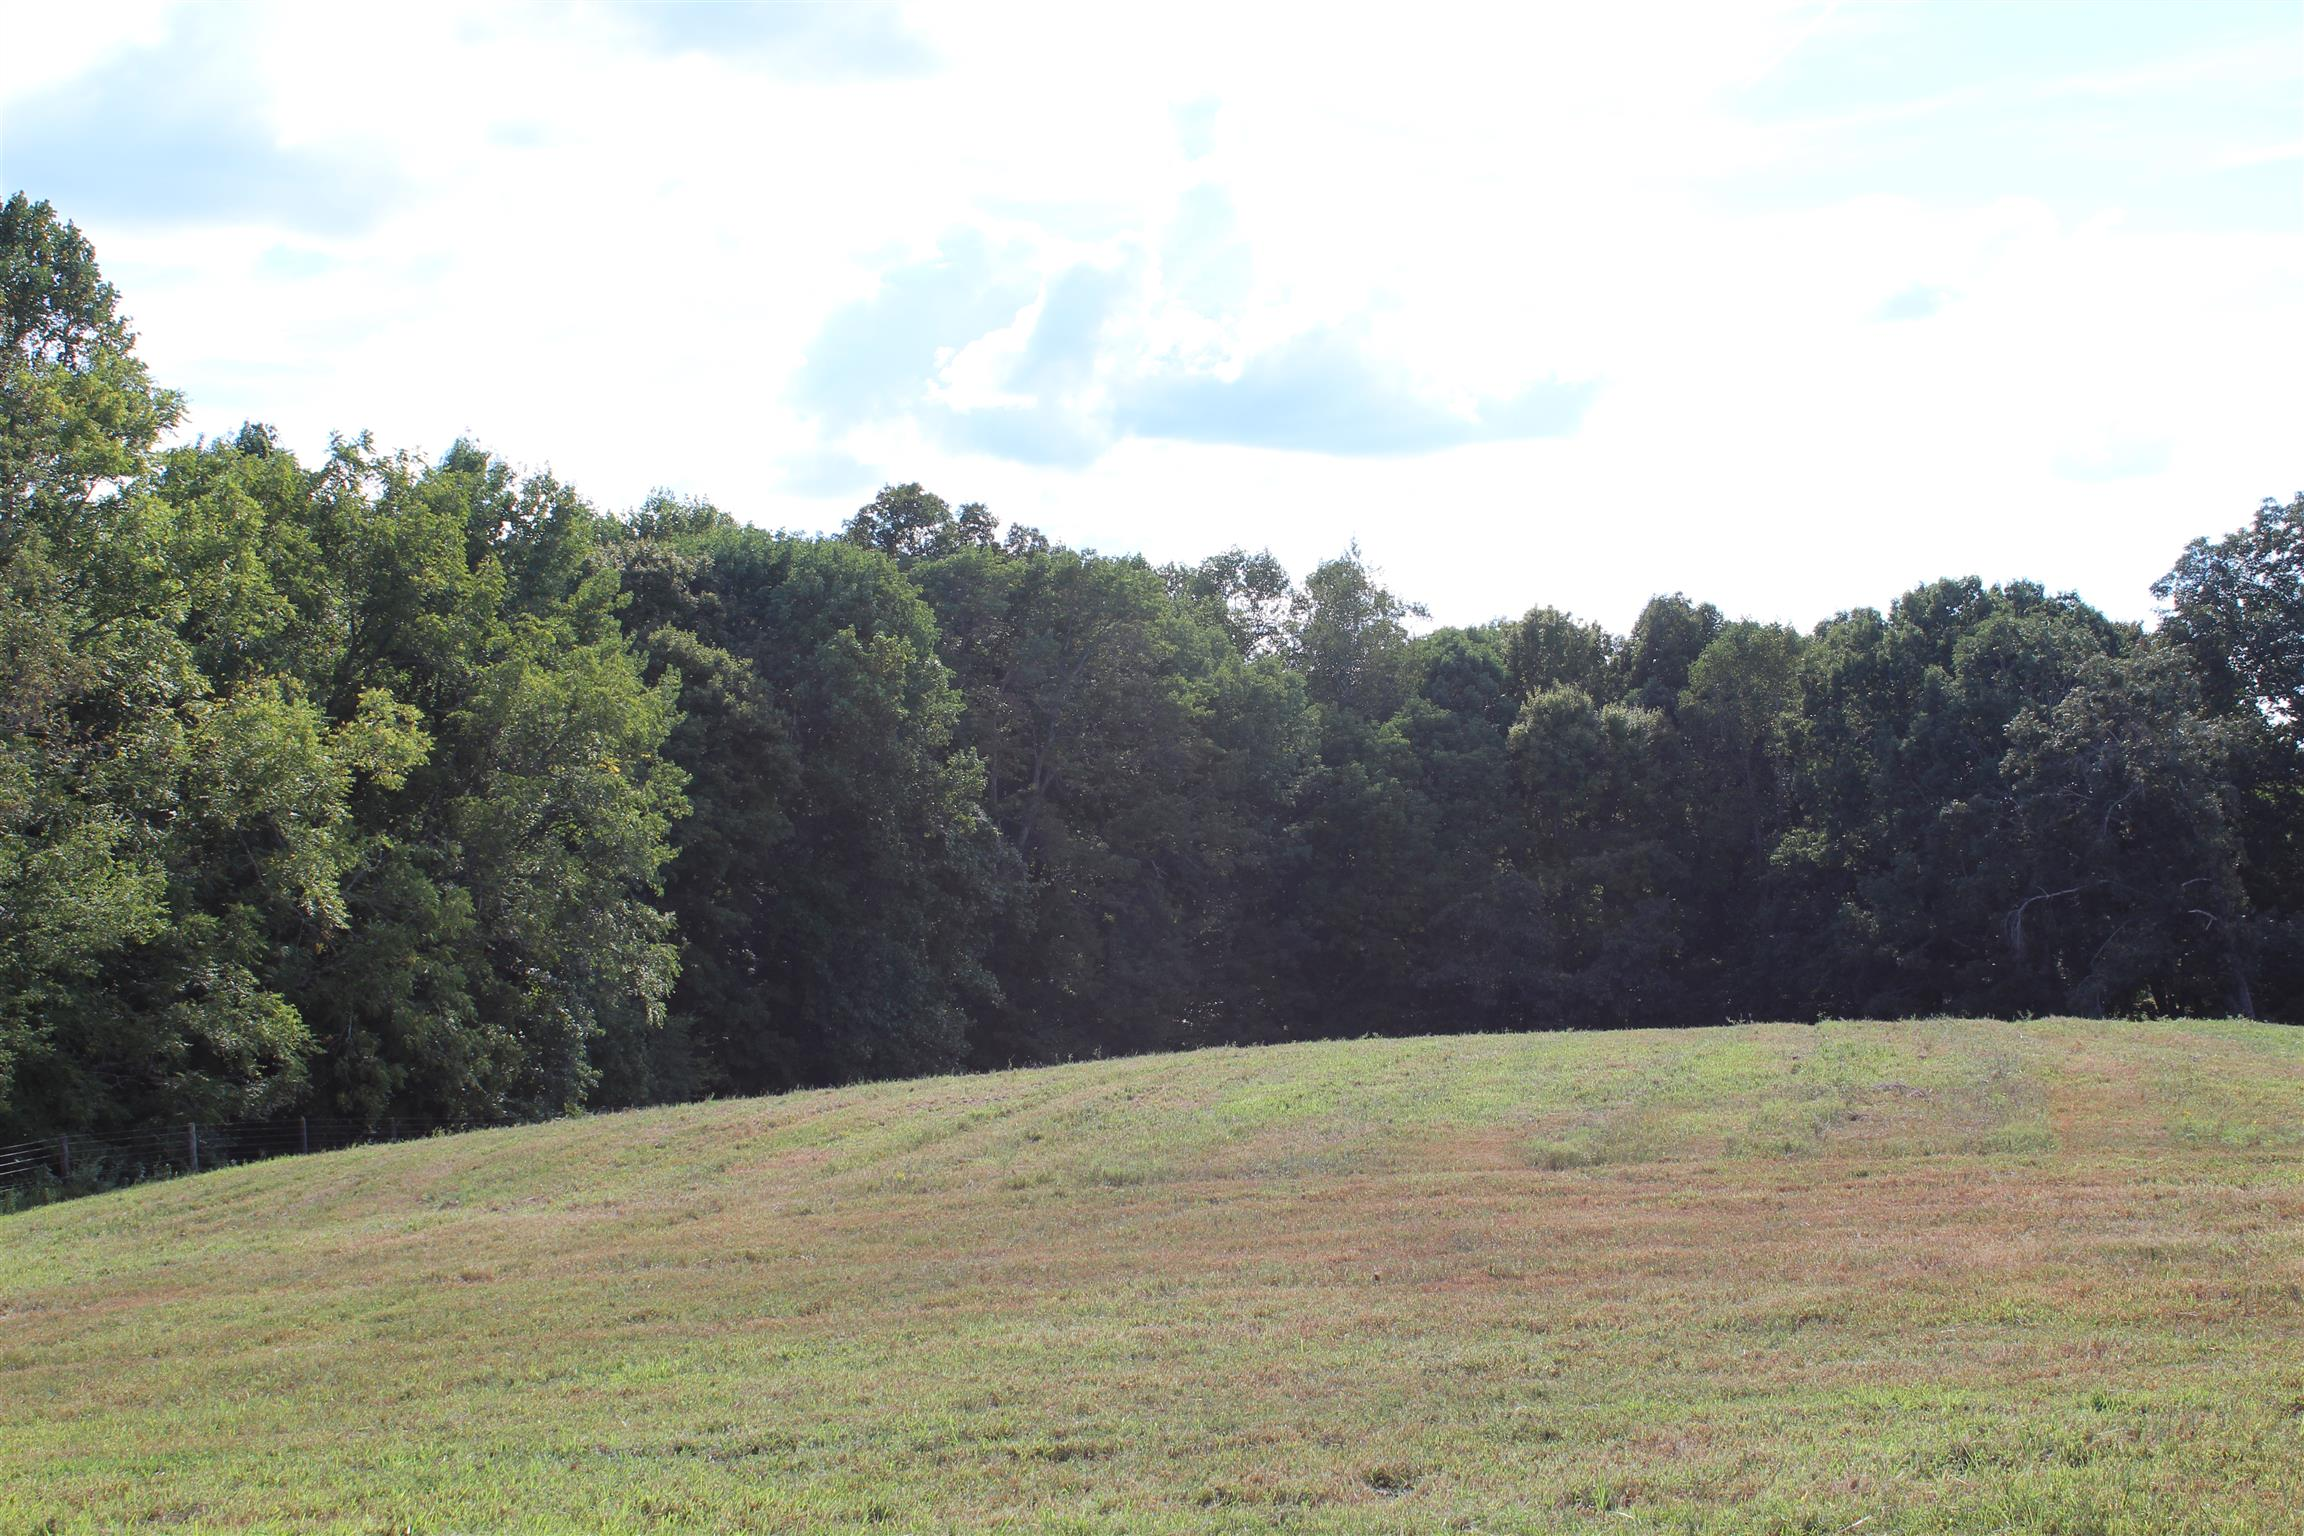 6 Hickory Point Rd (Lot 6), Clarksville, TN 37043 - Clarksville, TN real estate listing